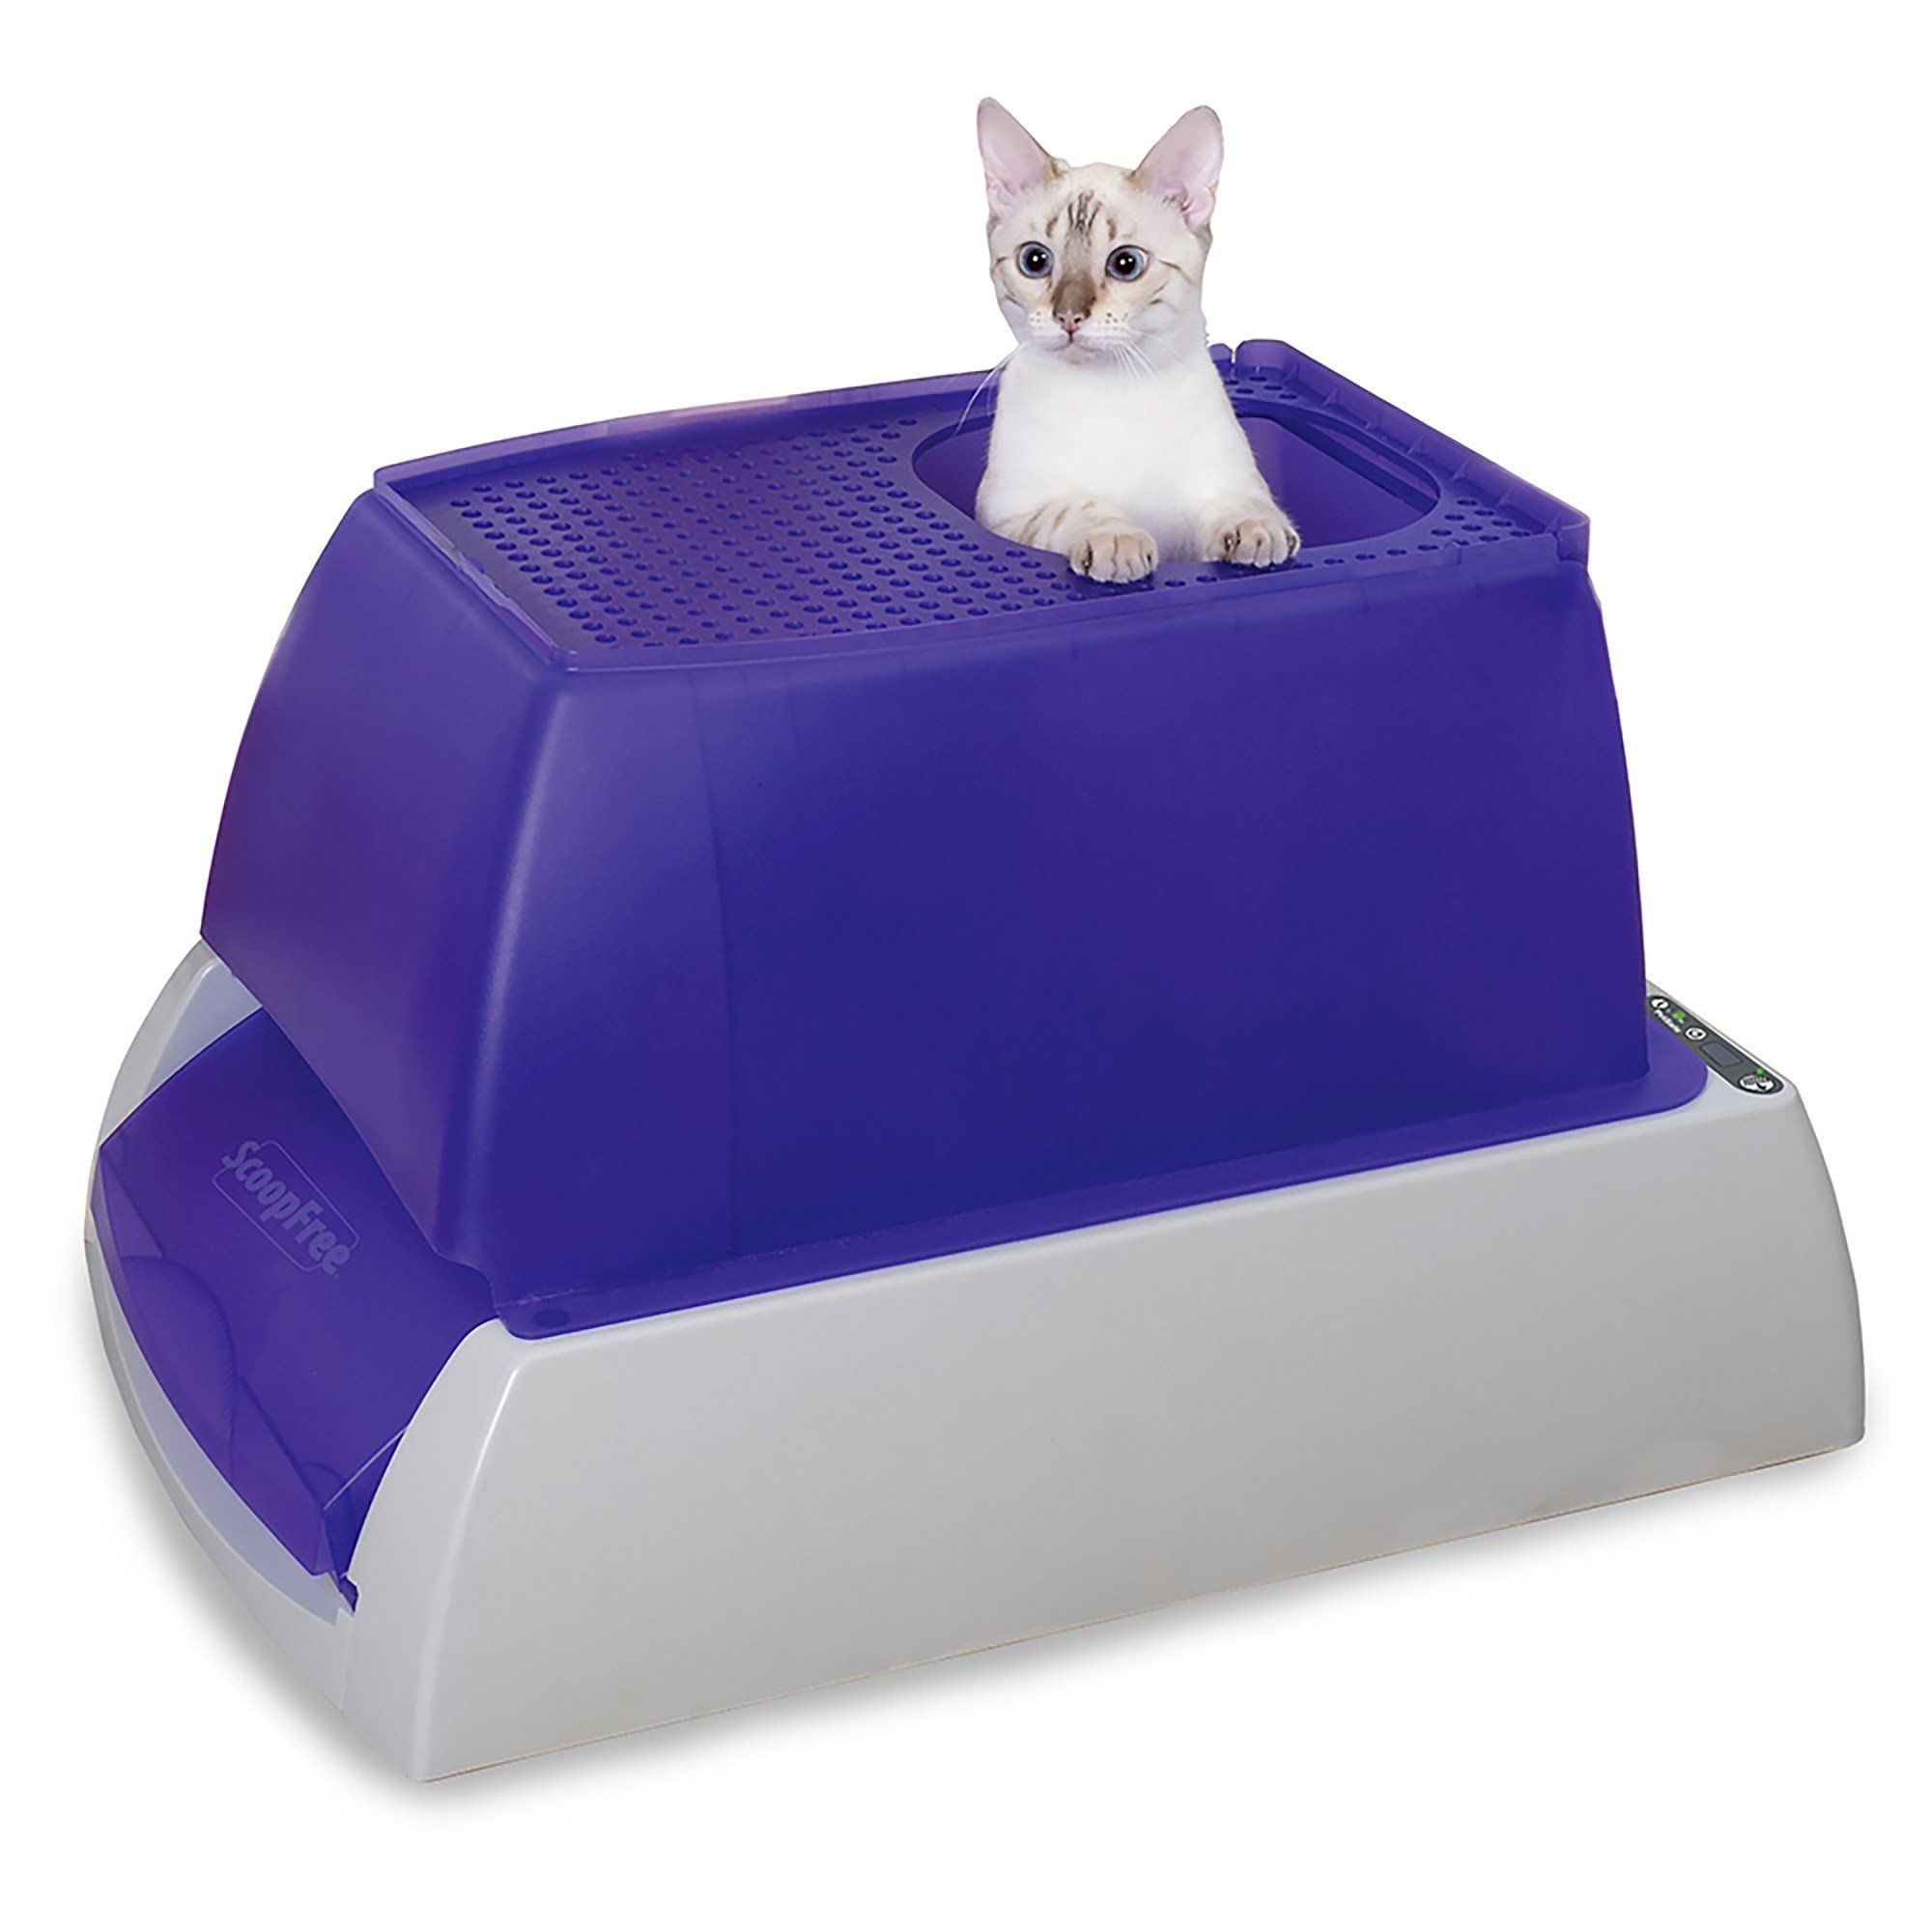 ScoopFree by PetSafe TopEntry Ultra SelfCleaning Cat